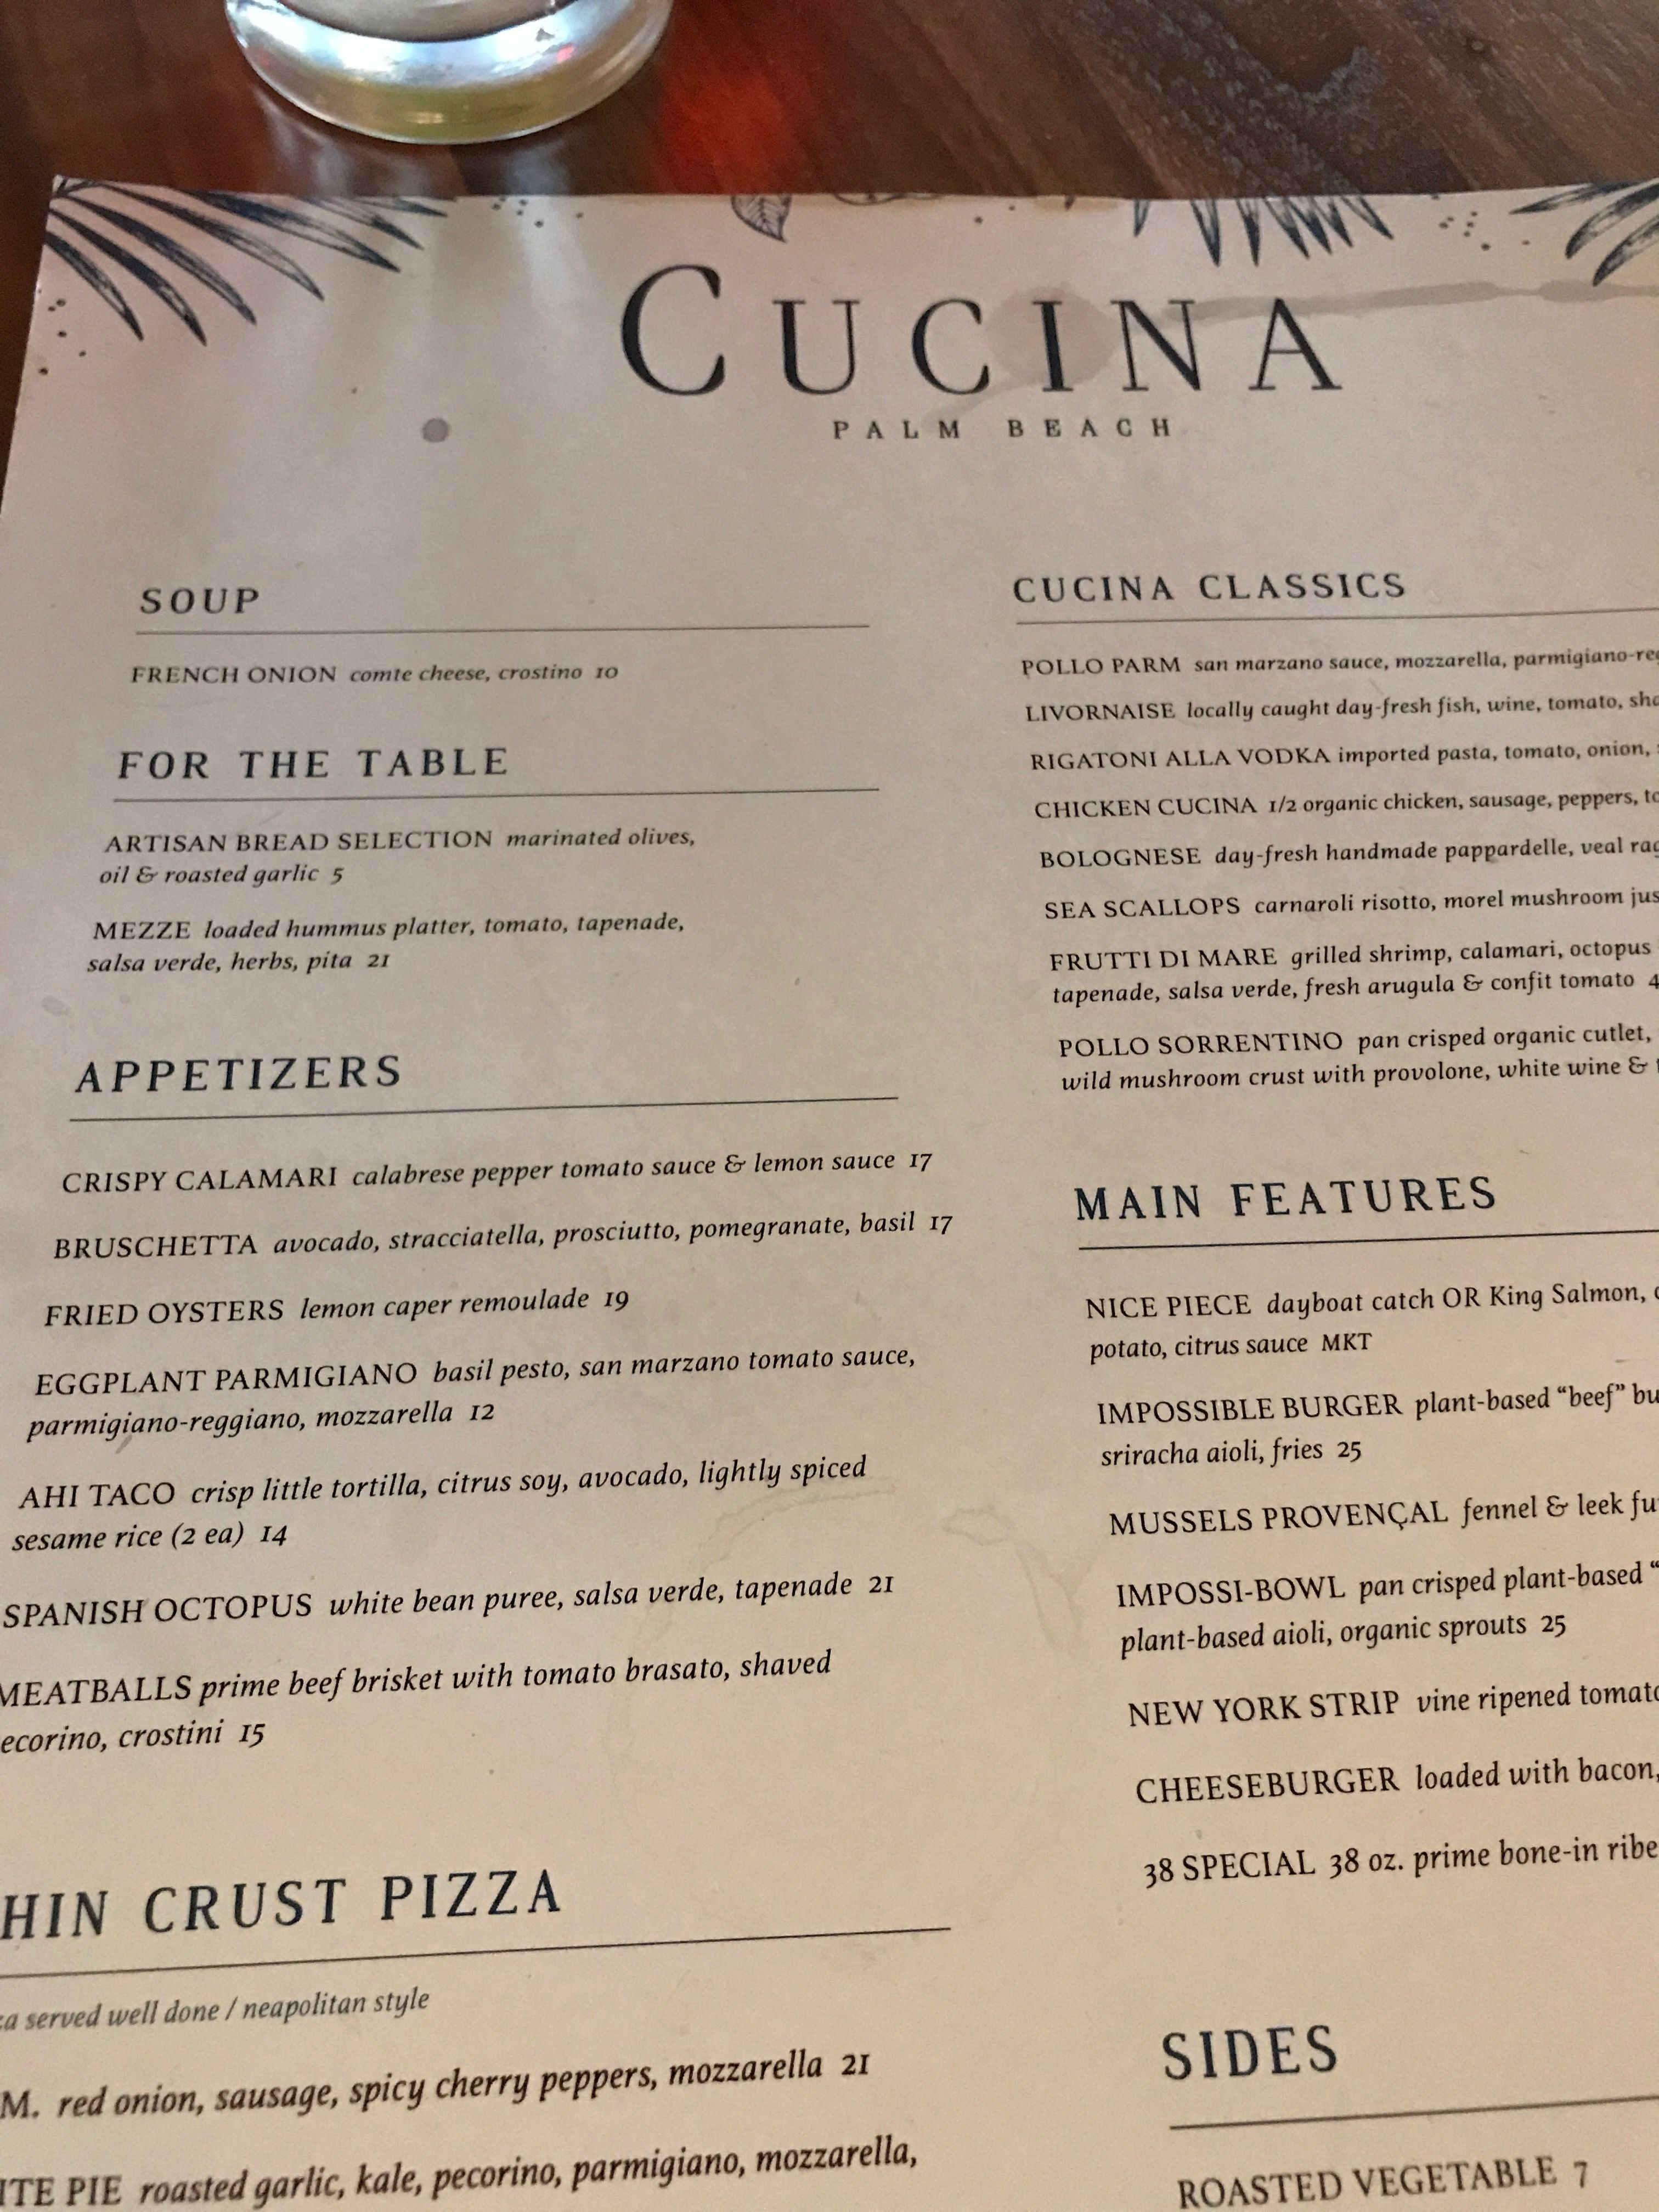 Cucina Palm Beach Cucina Palm Beach Florida Been There Done That Florida Palm